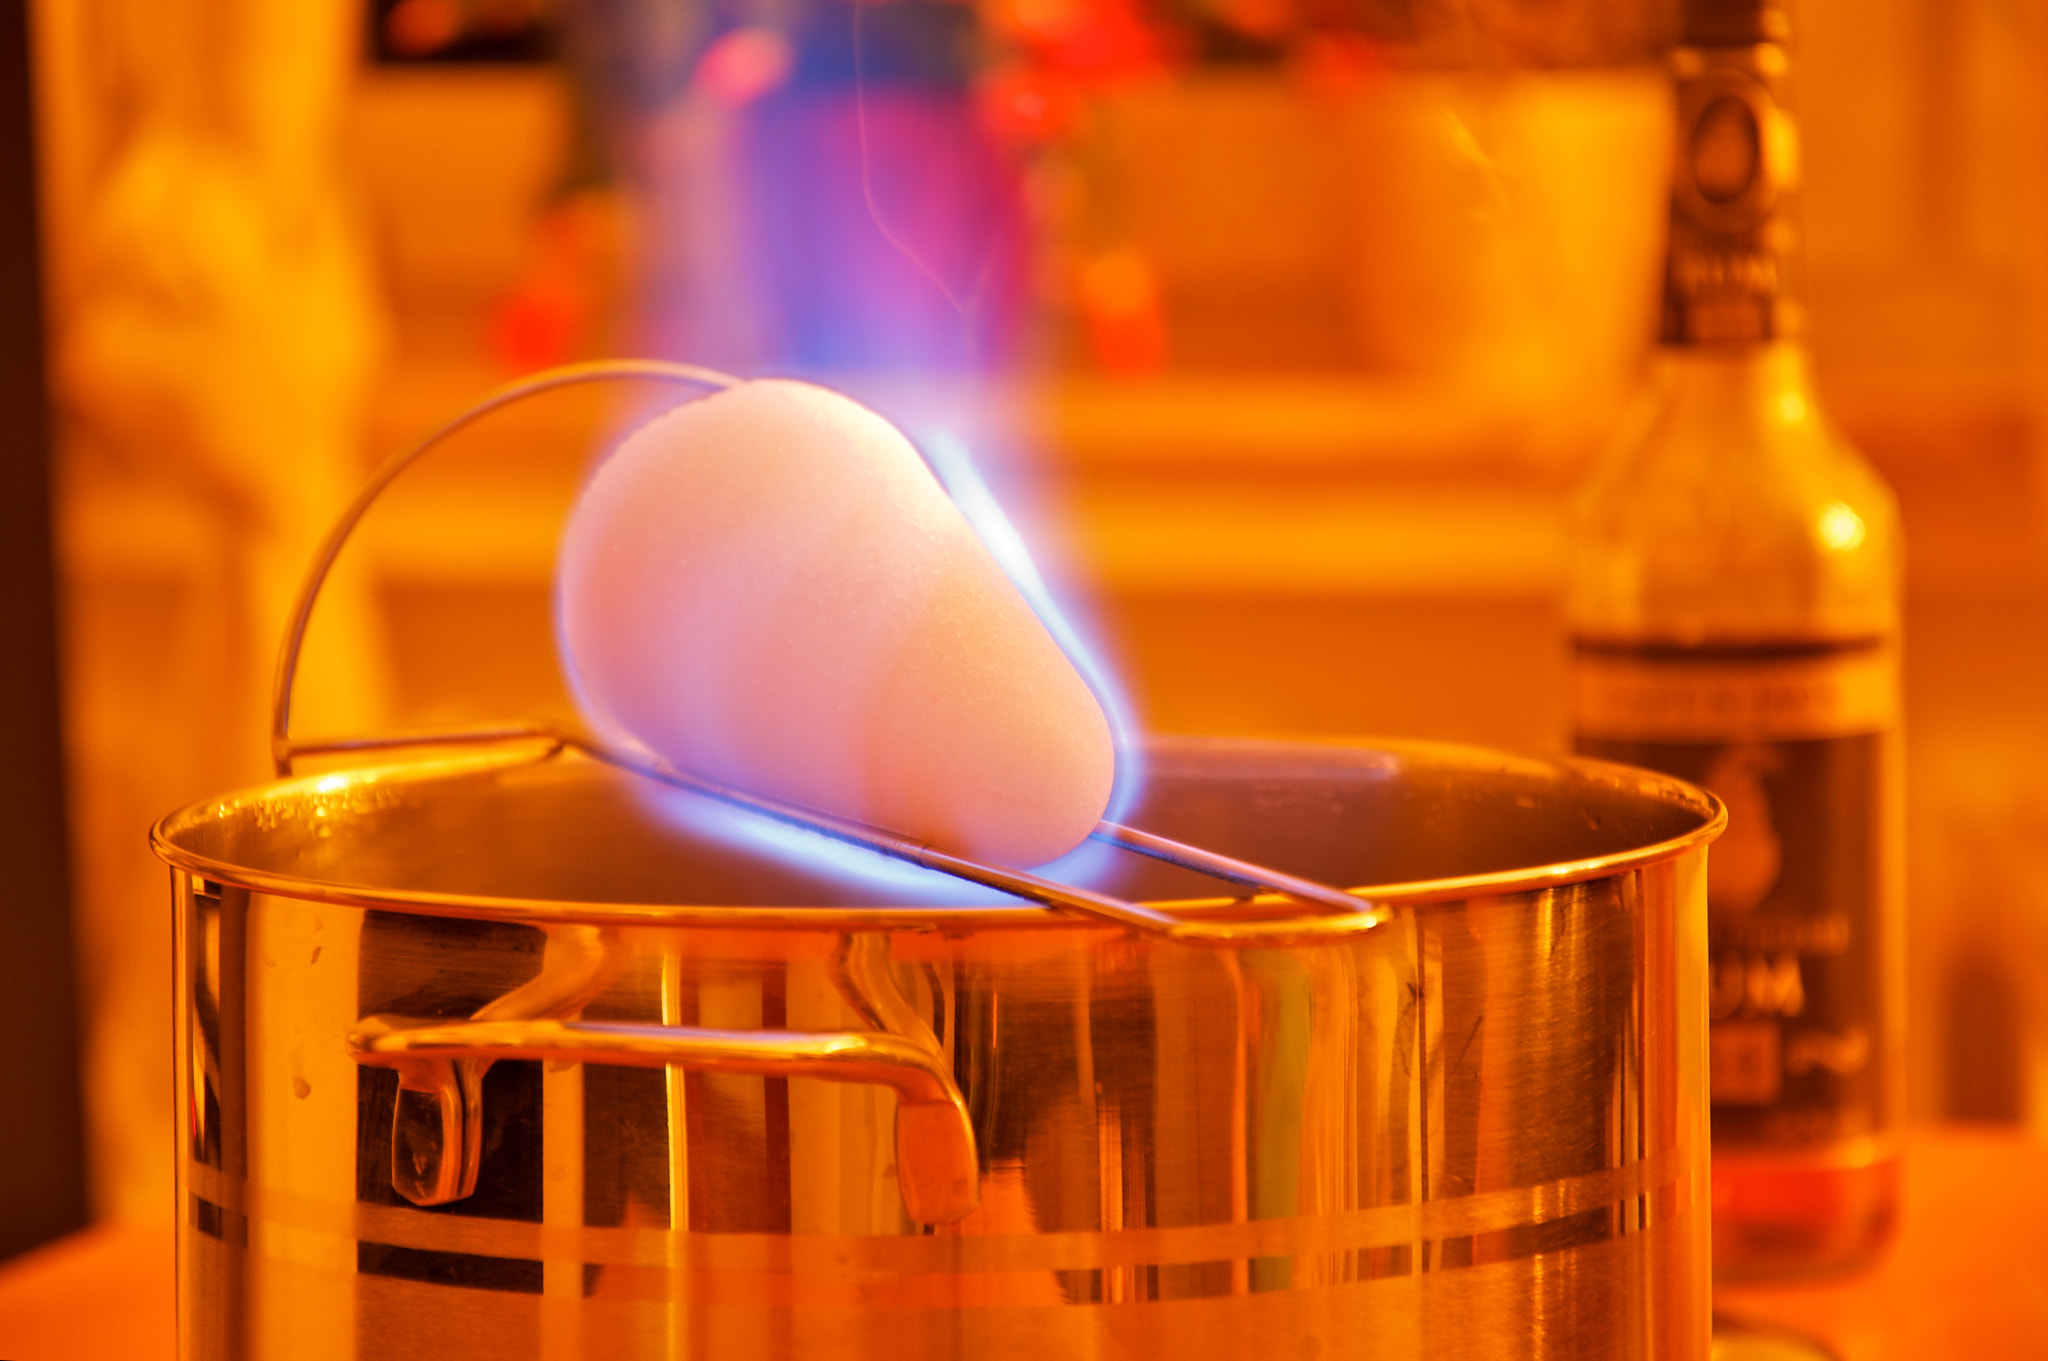 Photograph Feuerzangenbowle by Patrick Schaal on 500px